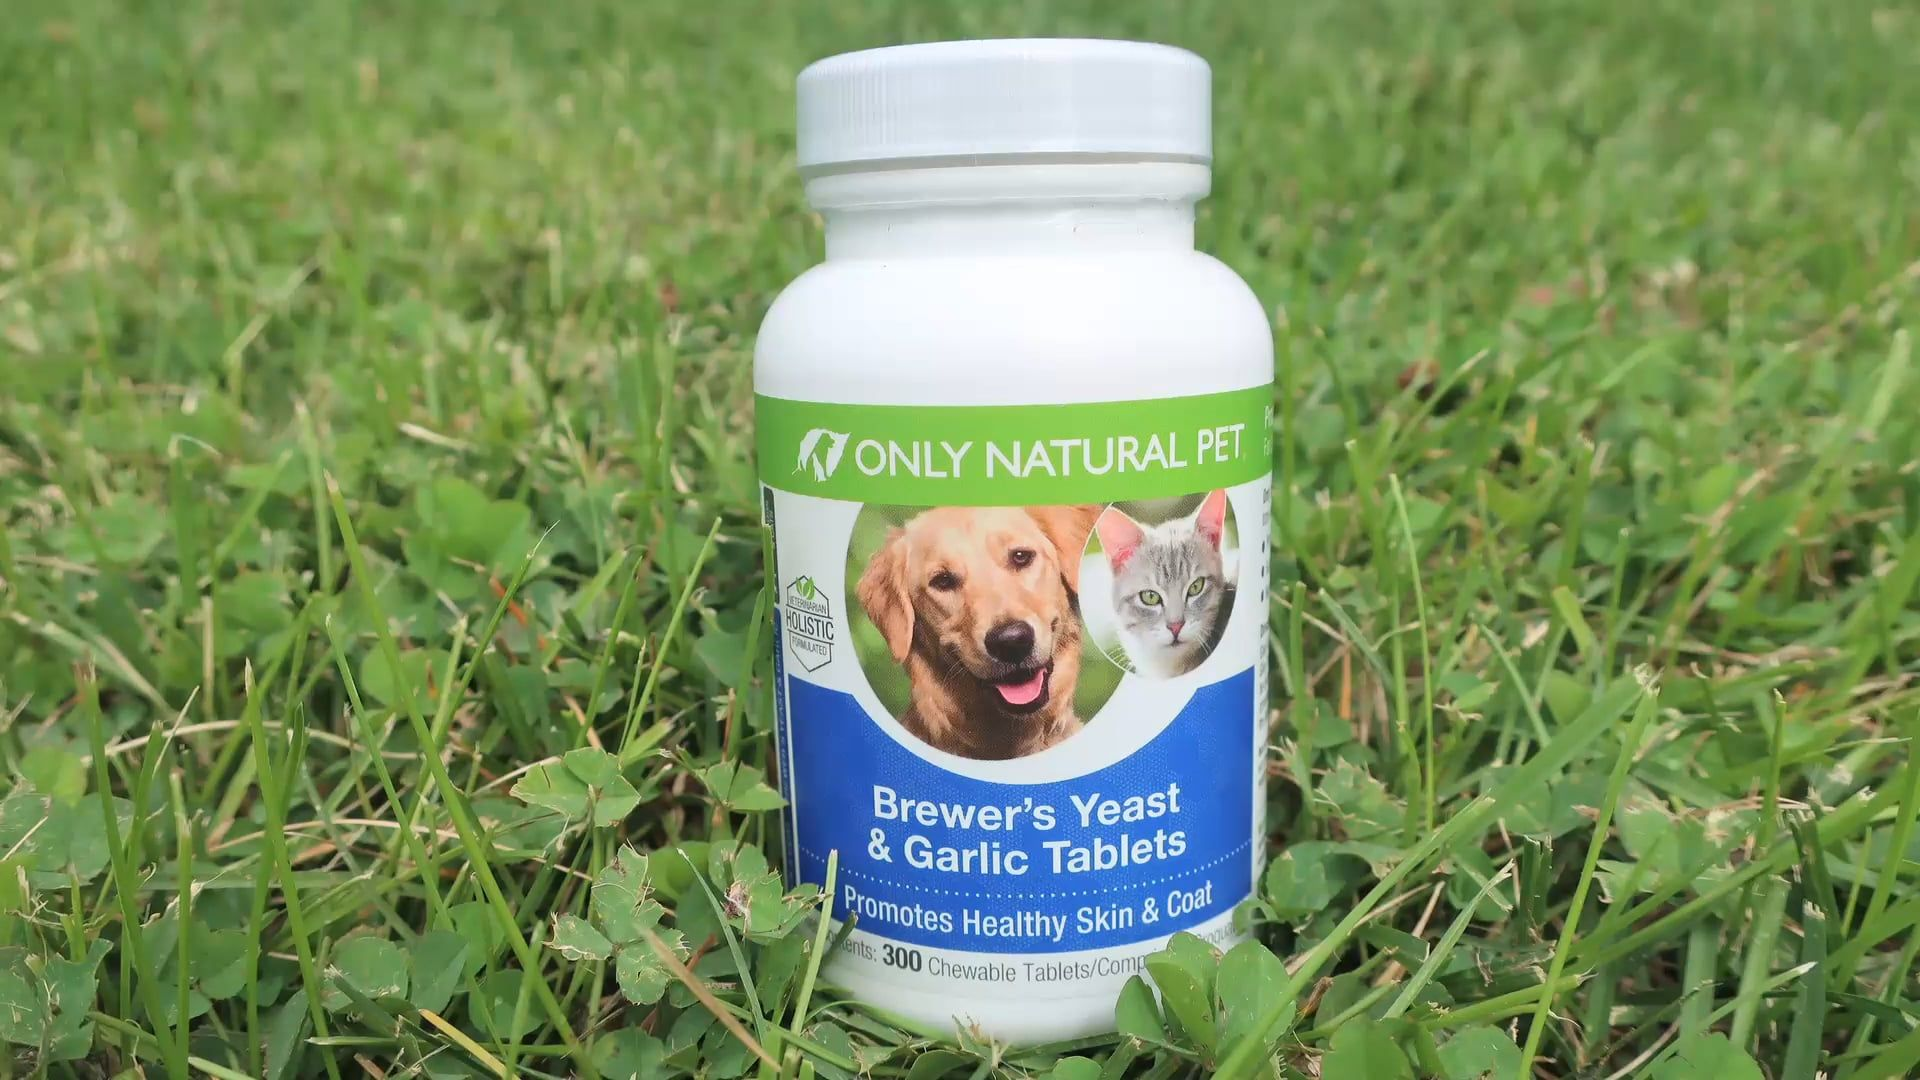 Only Natural Pet Brewers Yeast Garlic Flea Pills For Dogs Cats In 2020 Natural Pet Pets Dog Cat